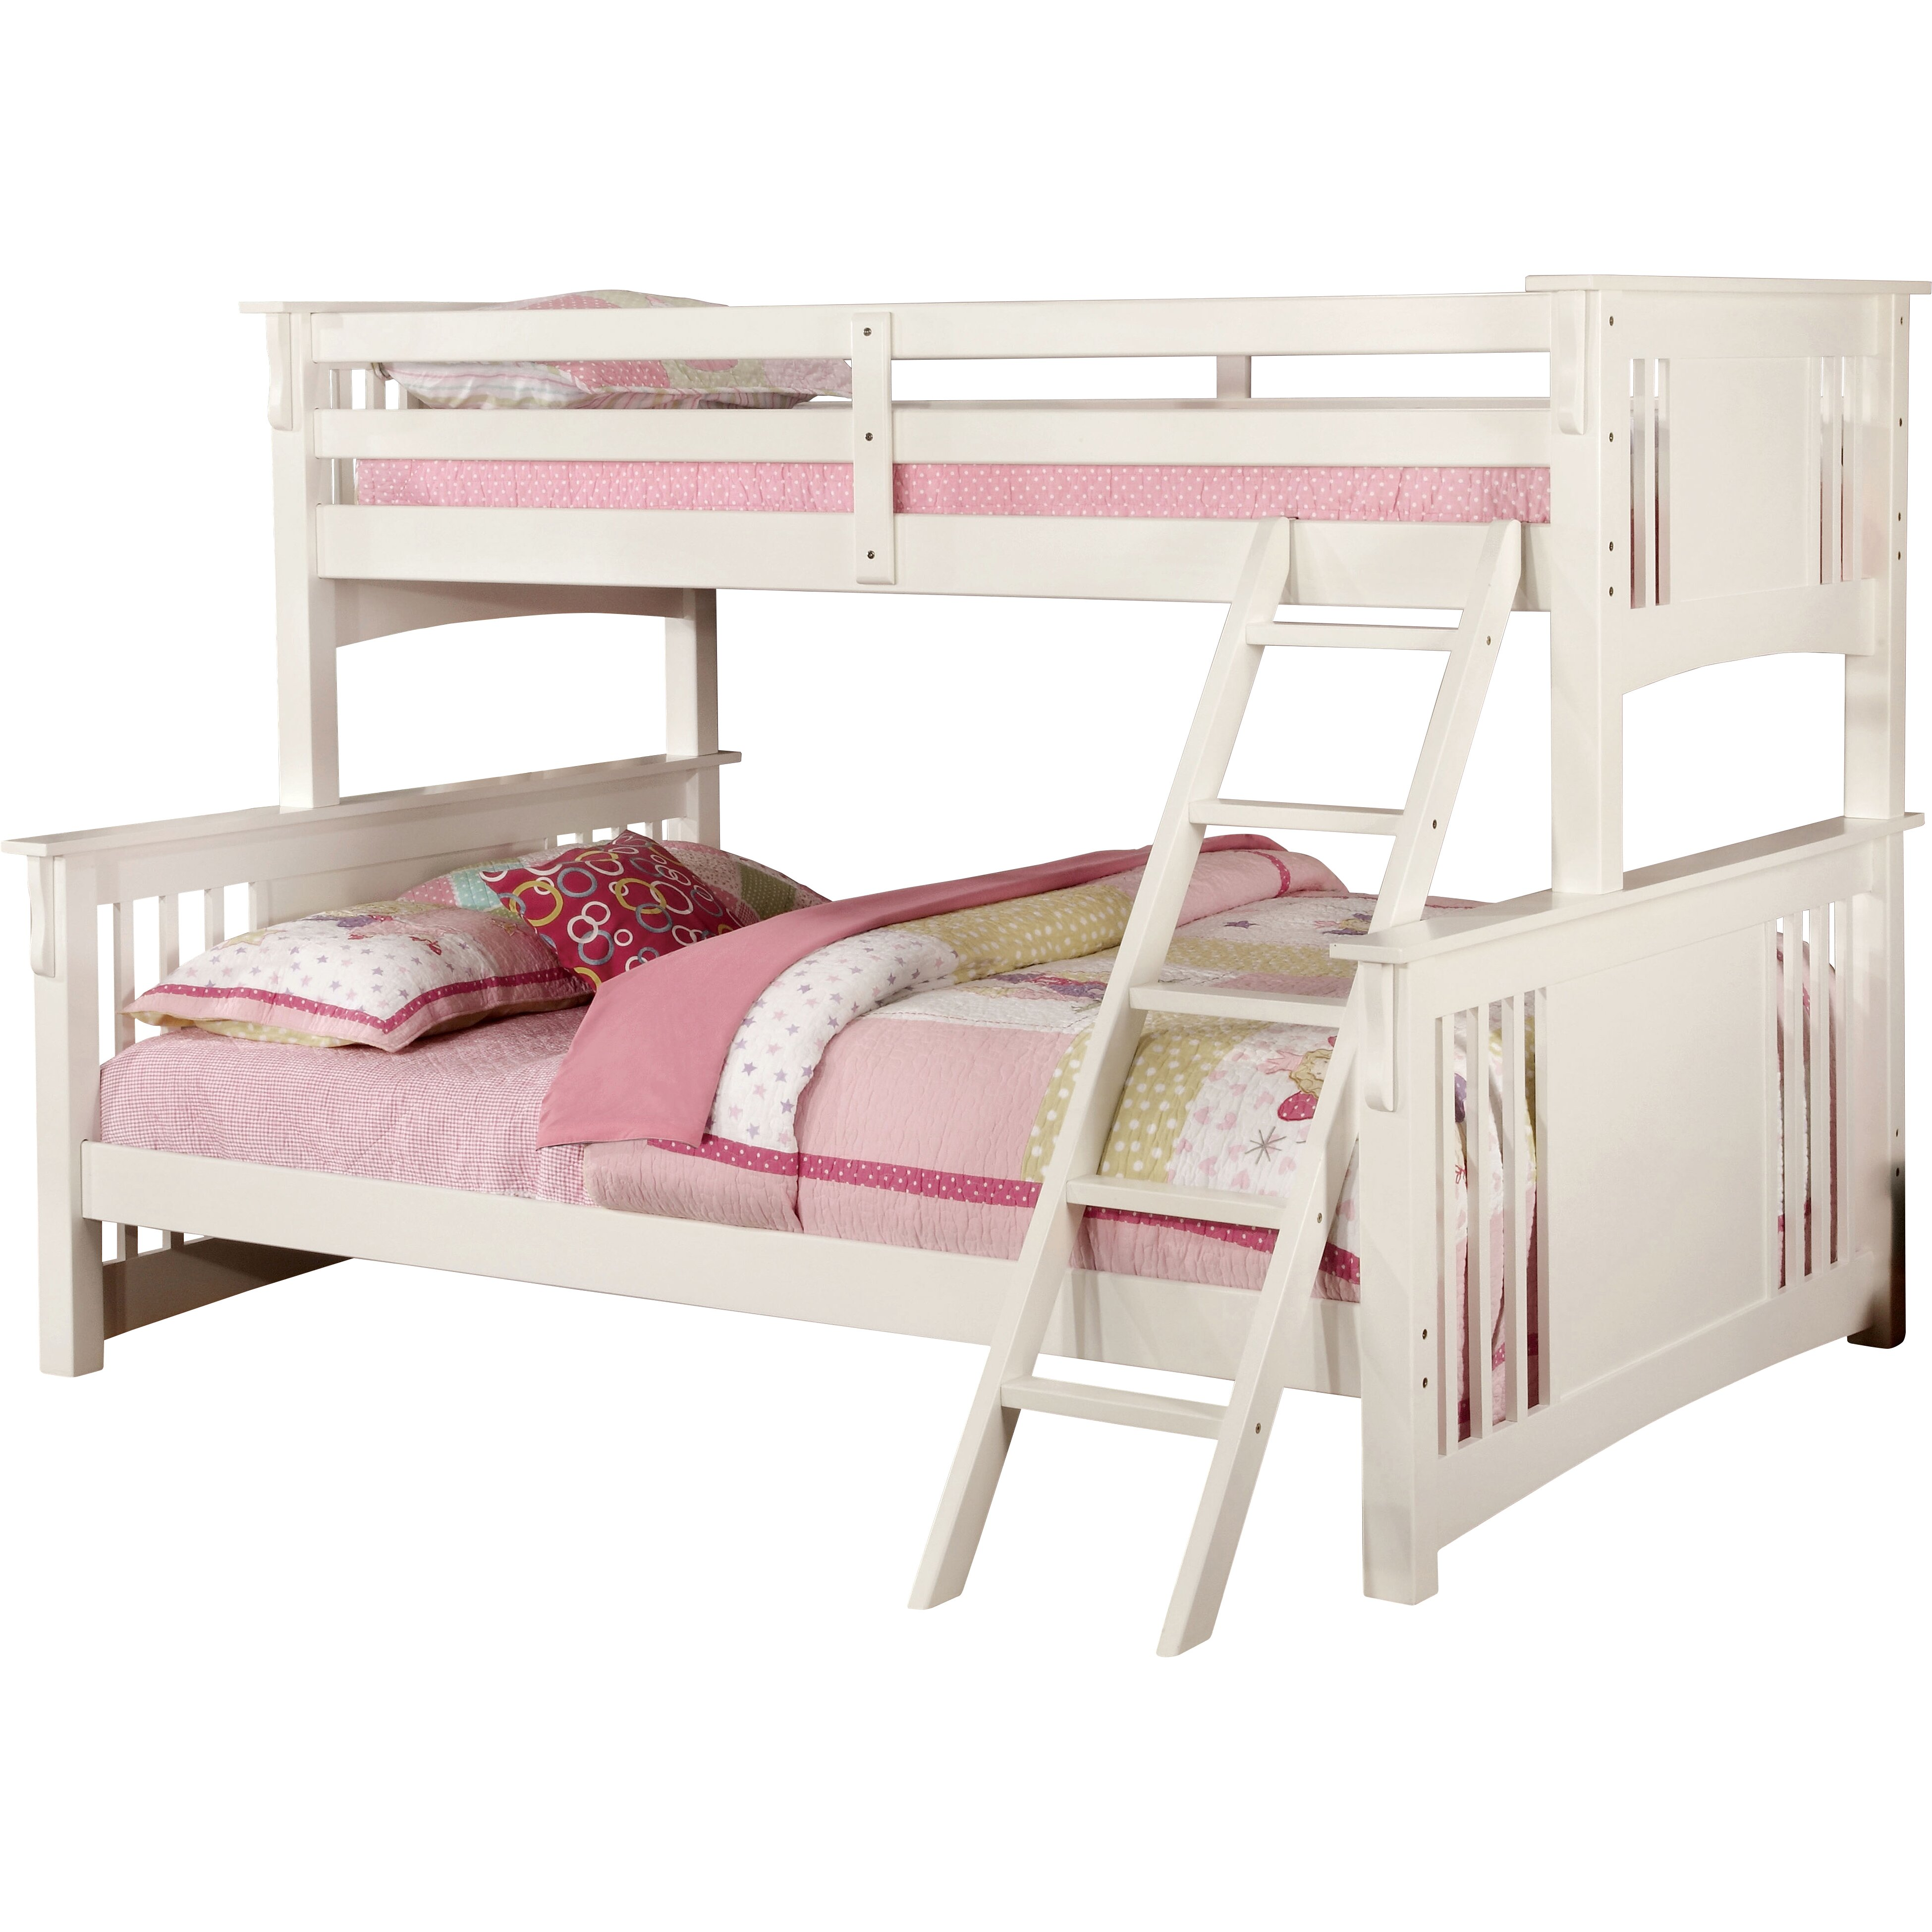 Hokku designs spring twin over queen futon bunk bed for Twin bed over futon